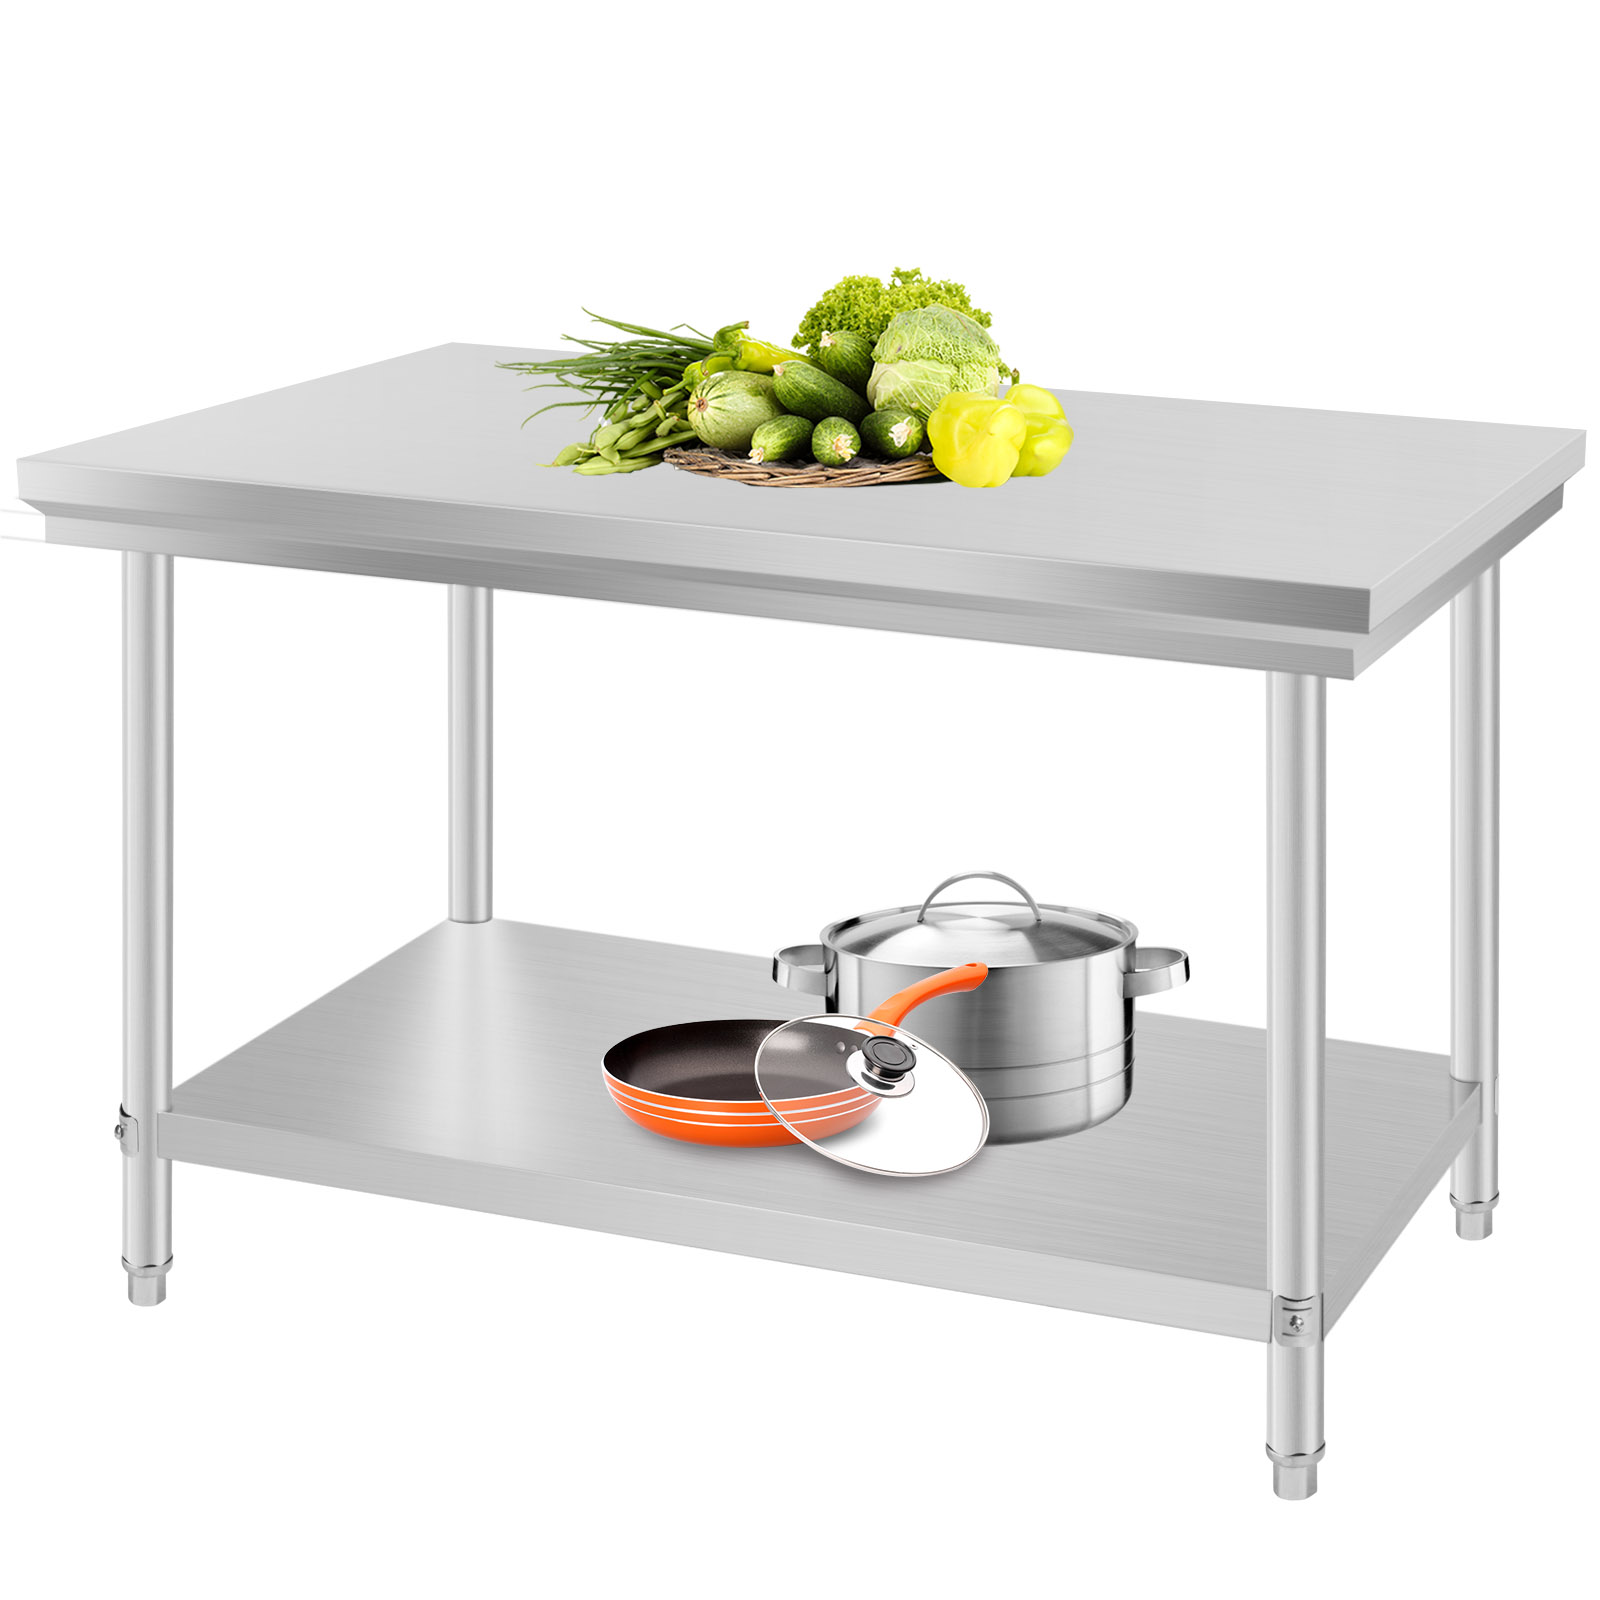 Stainless Steel Kitchen Work Table: Commercial Stainless Steel Work Bench Kitchen Catering